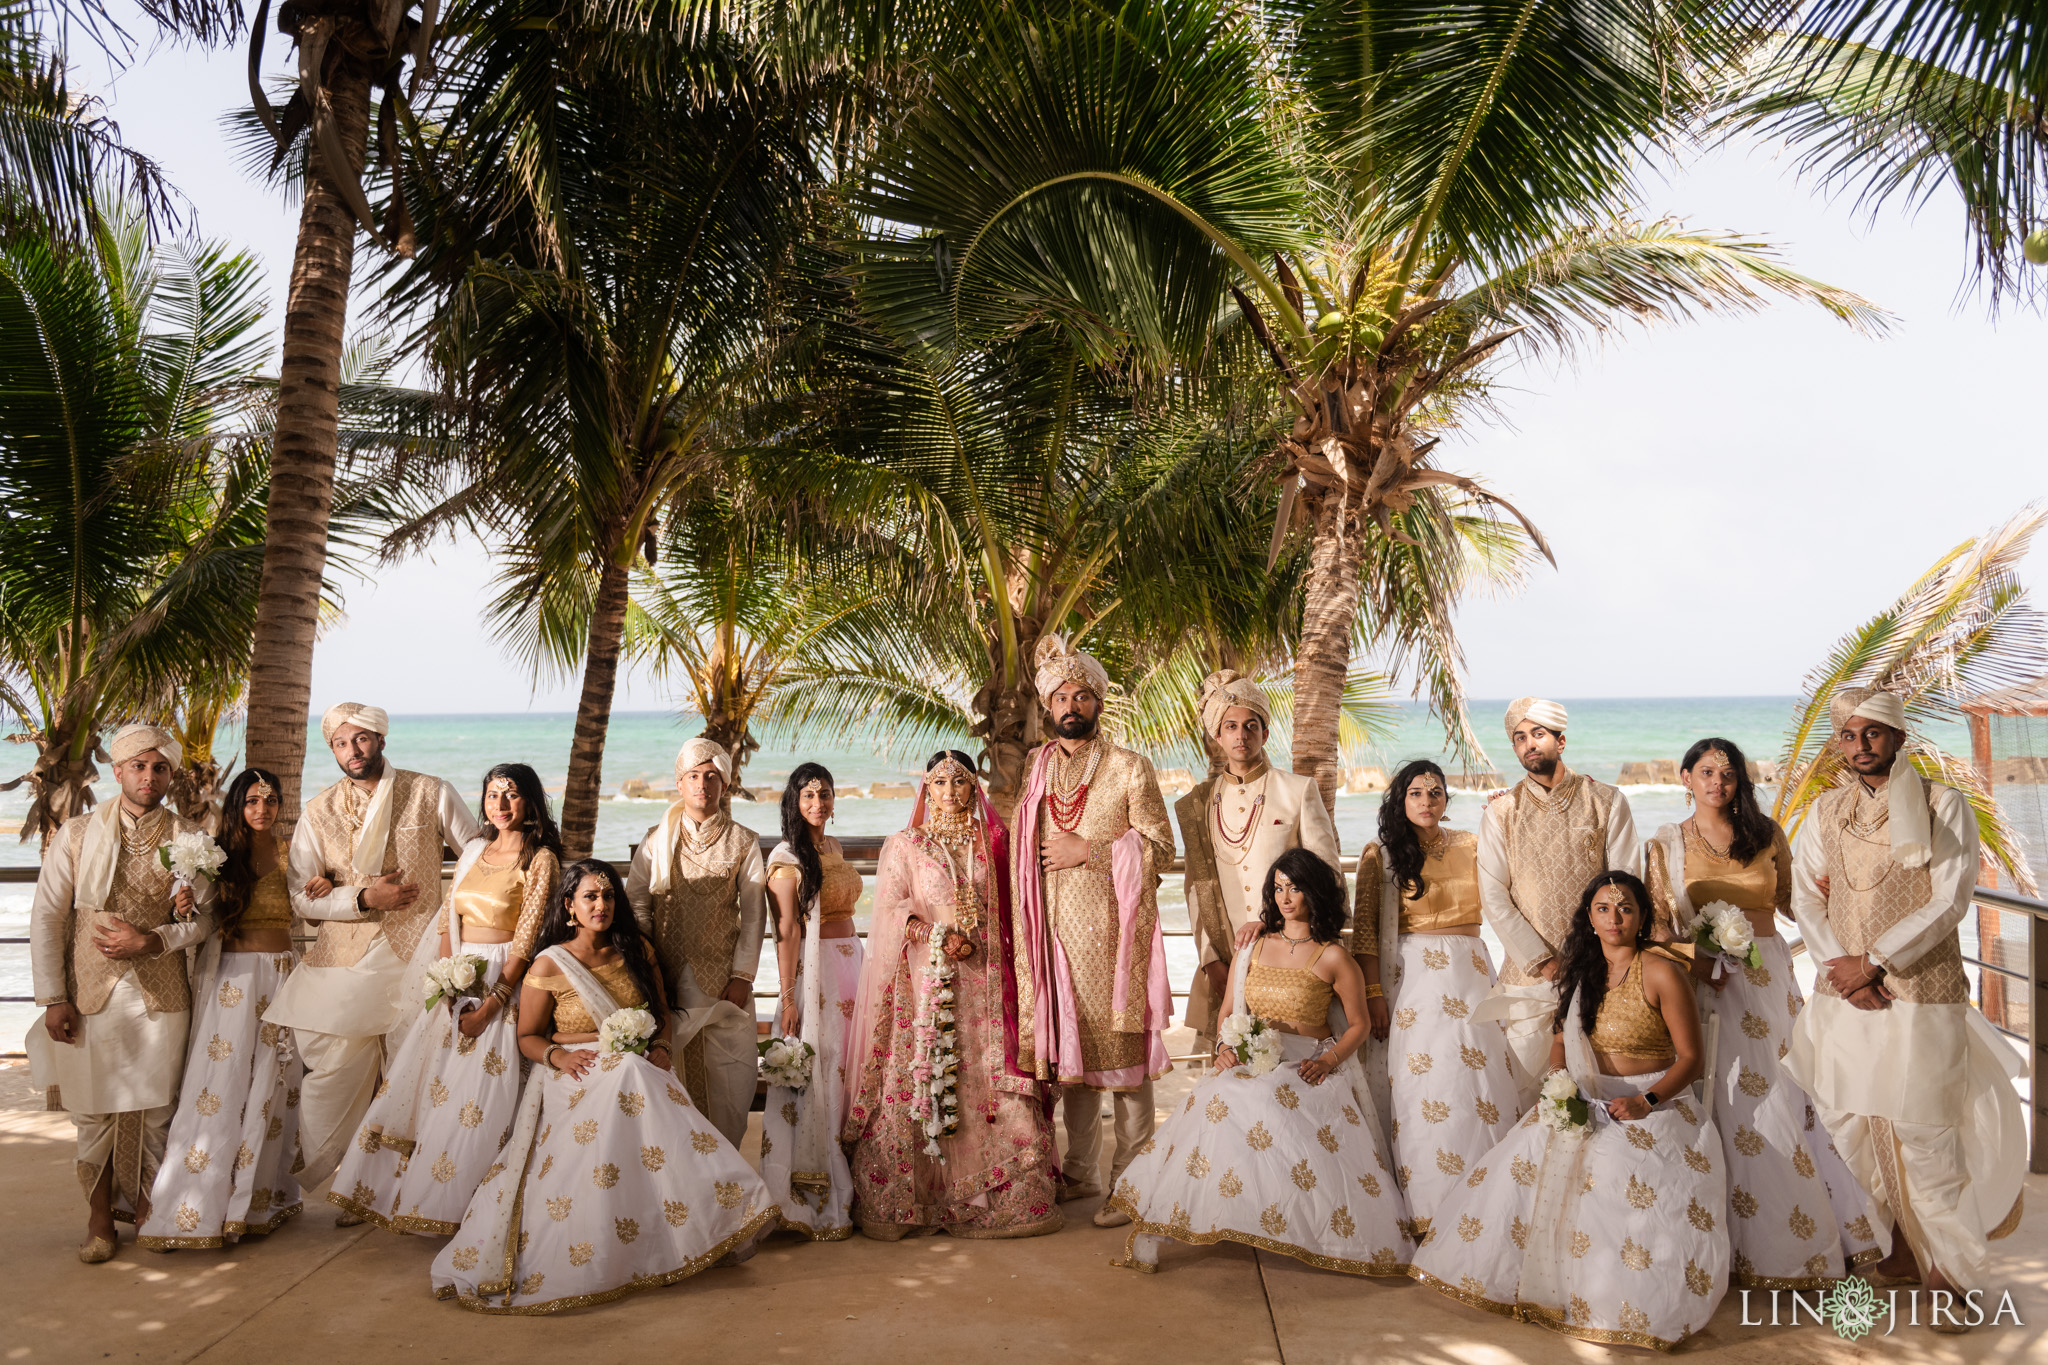 40 Generations Riviera Maya Cancun Mexico Indian Wedding Party Photography